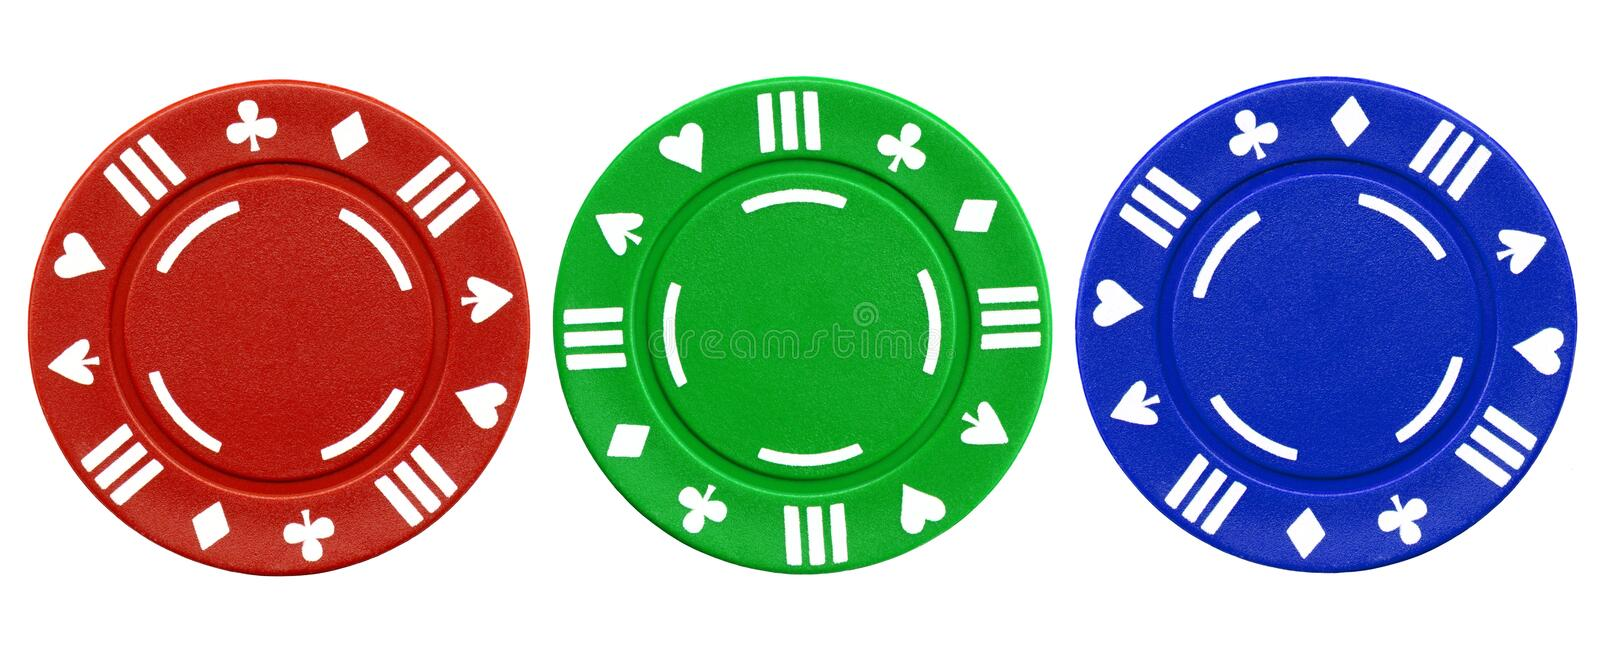 Have fun over the phone casino game through online